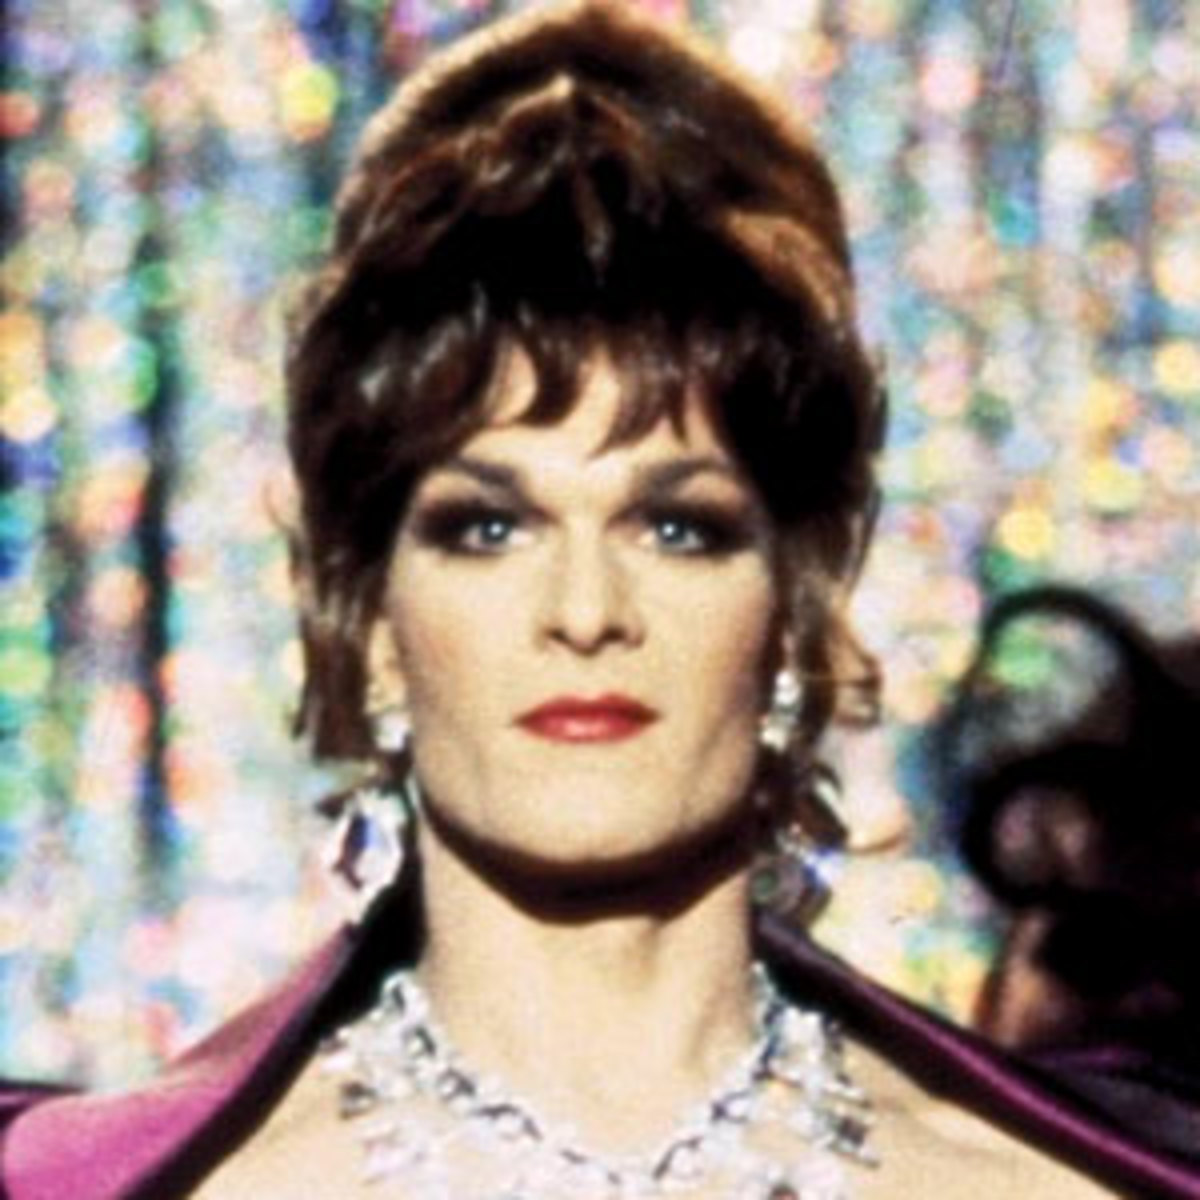 movie analysis to wong foo Find this pin and more on beautiful things by carmen501c3  julie newmar great movie to wong foo ~ chi-chi rodriguez,  most succint analysis of male-female.